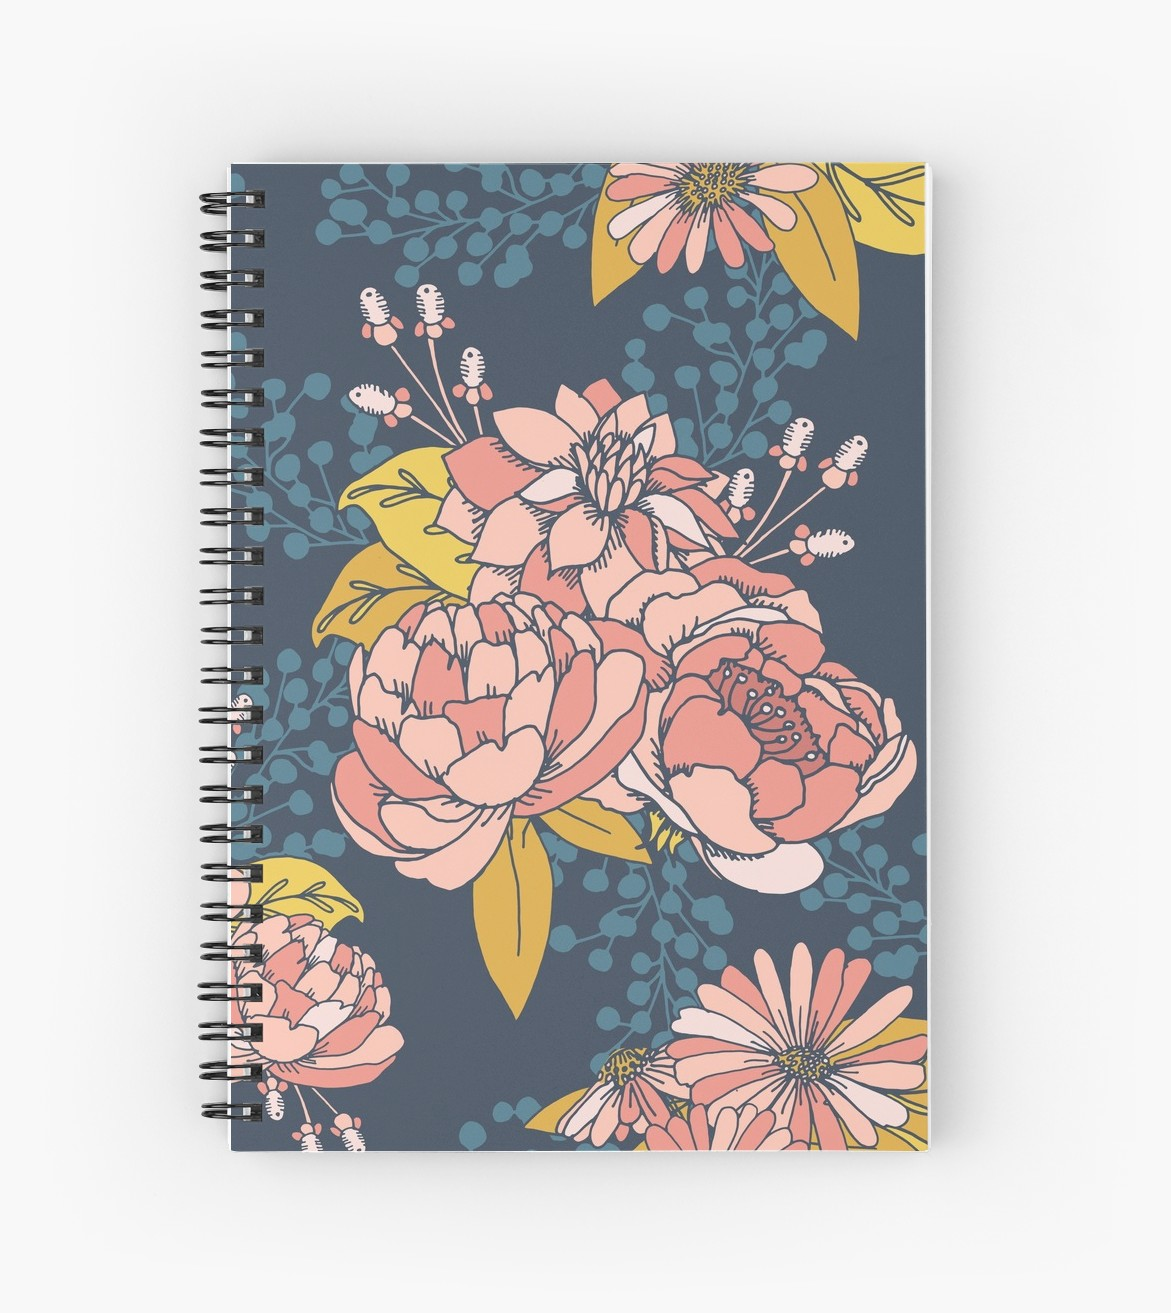 Blue and coral flowers on a notebook - take notes or doodle this lovely book is perfect style for school or home